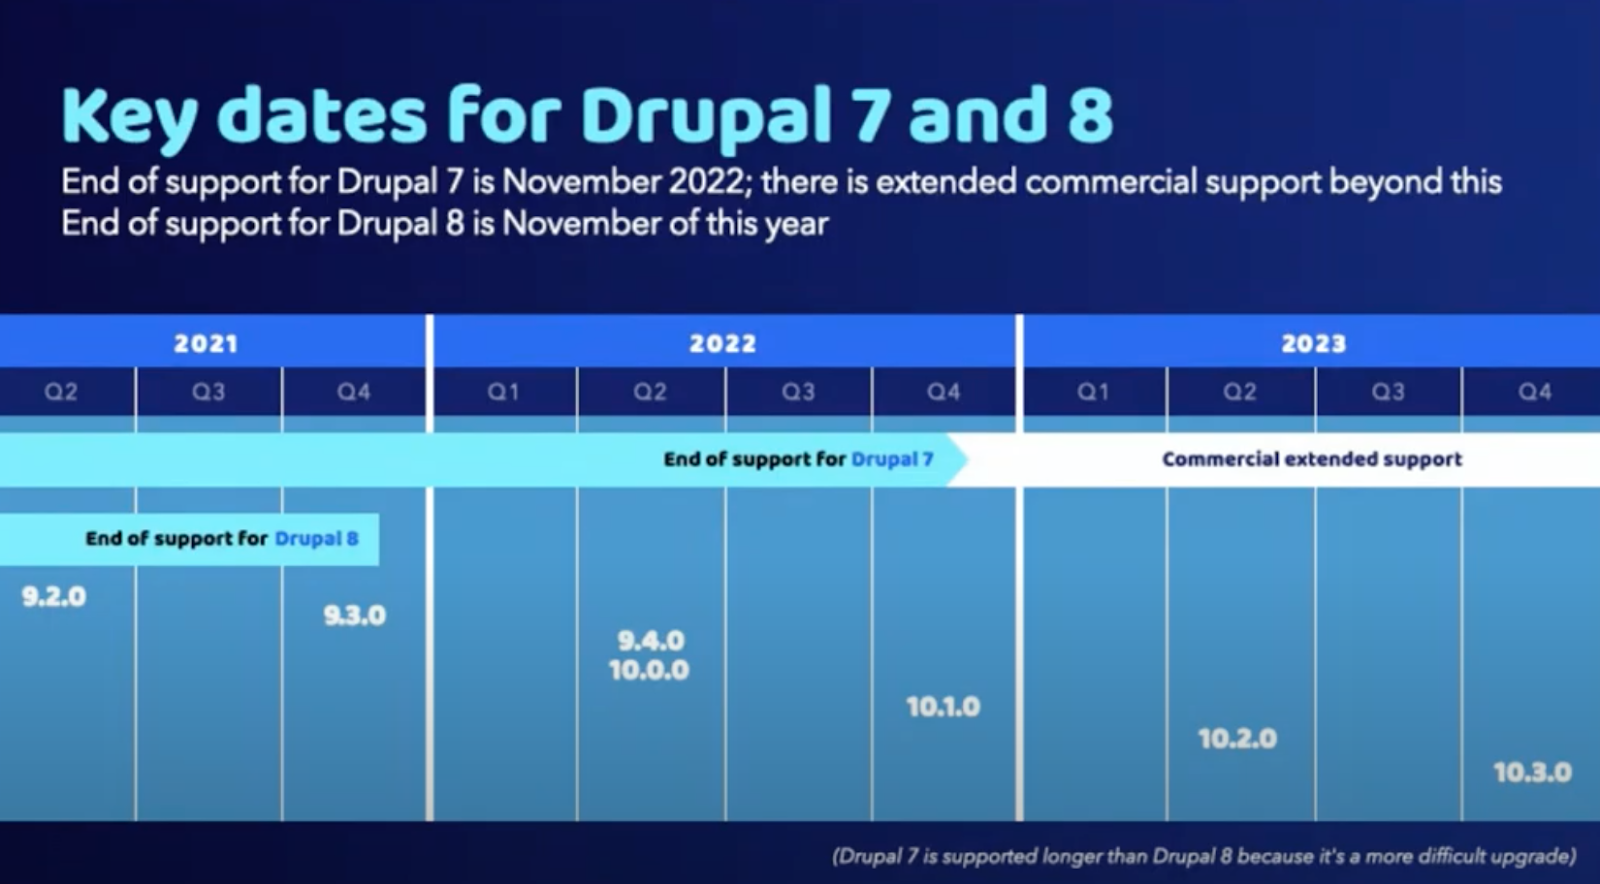 Key dates for Drupal 7 and 8